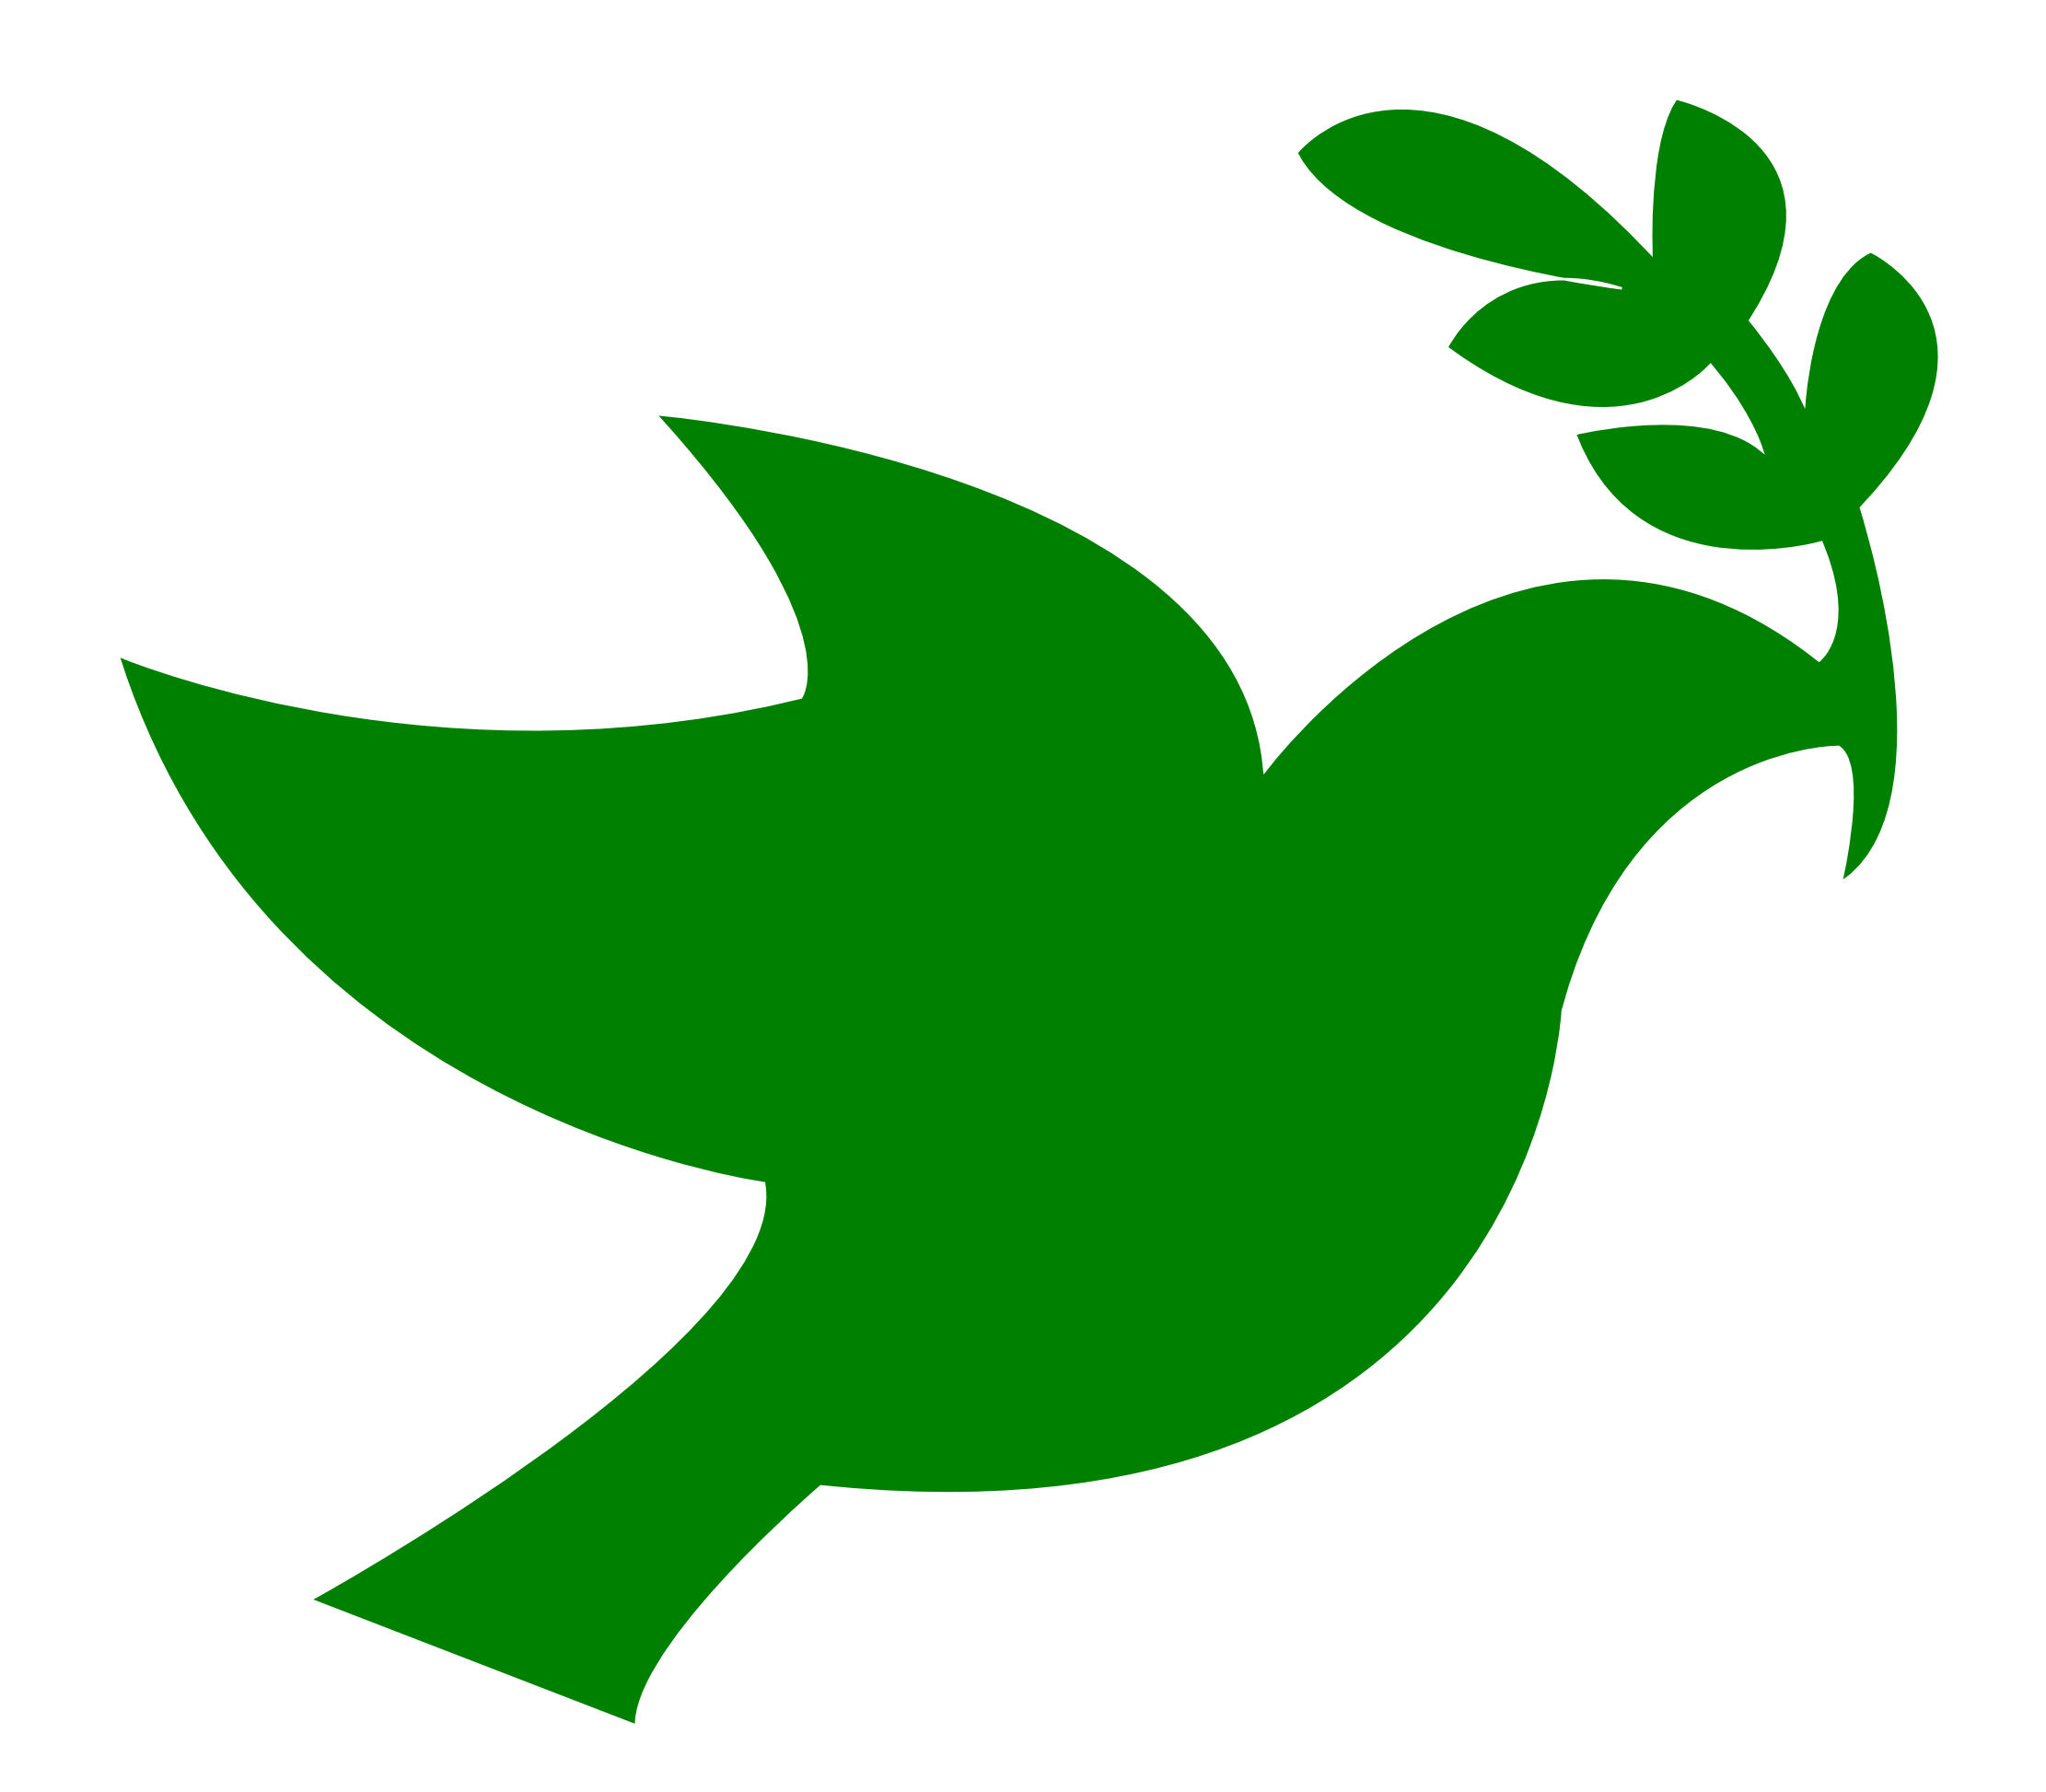 Funeral clipart confirmation. Holy spirit dove silhouette